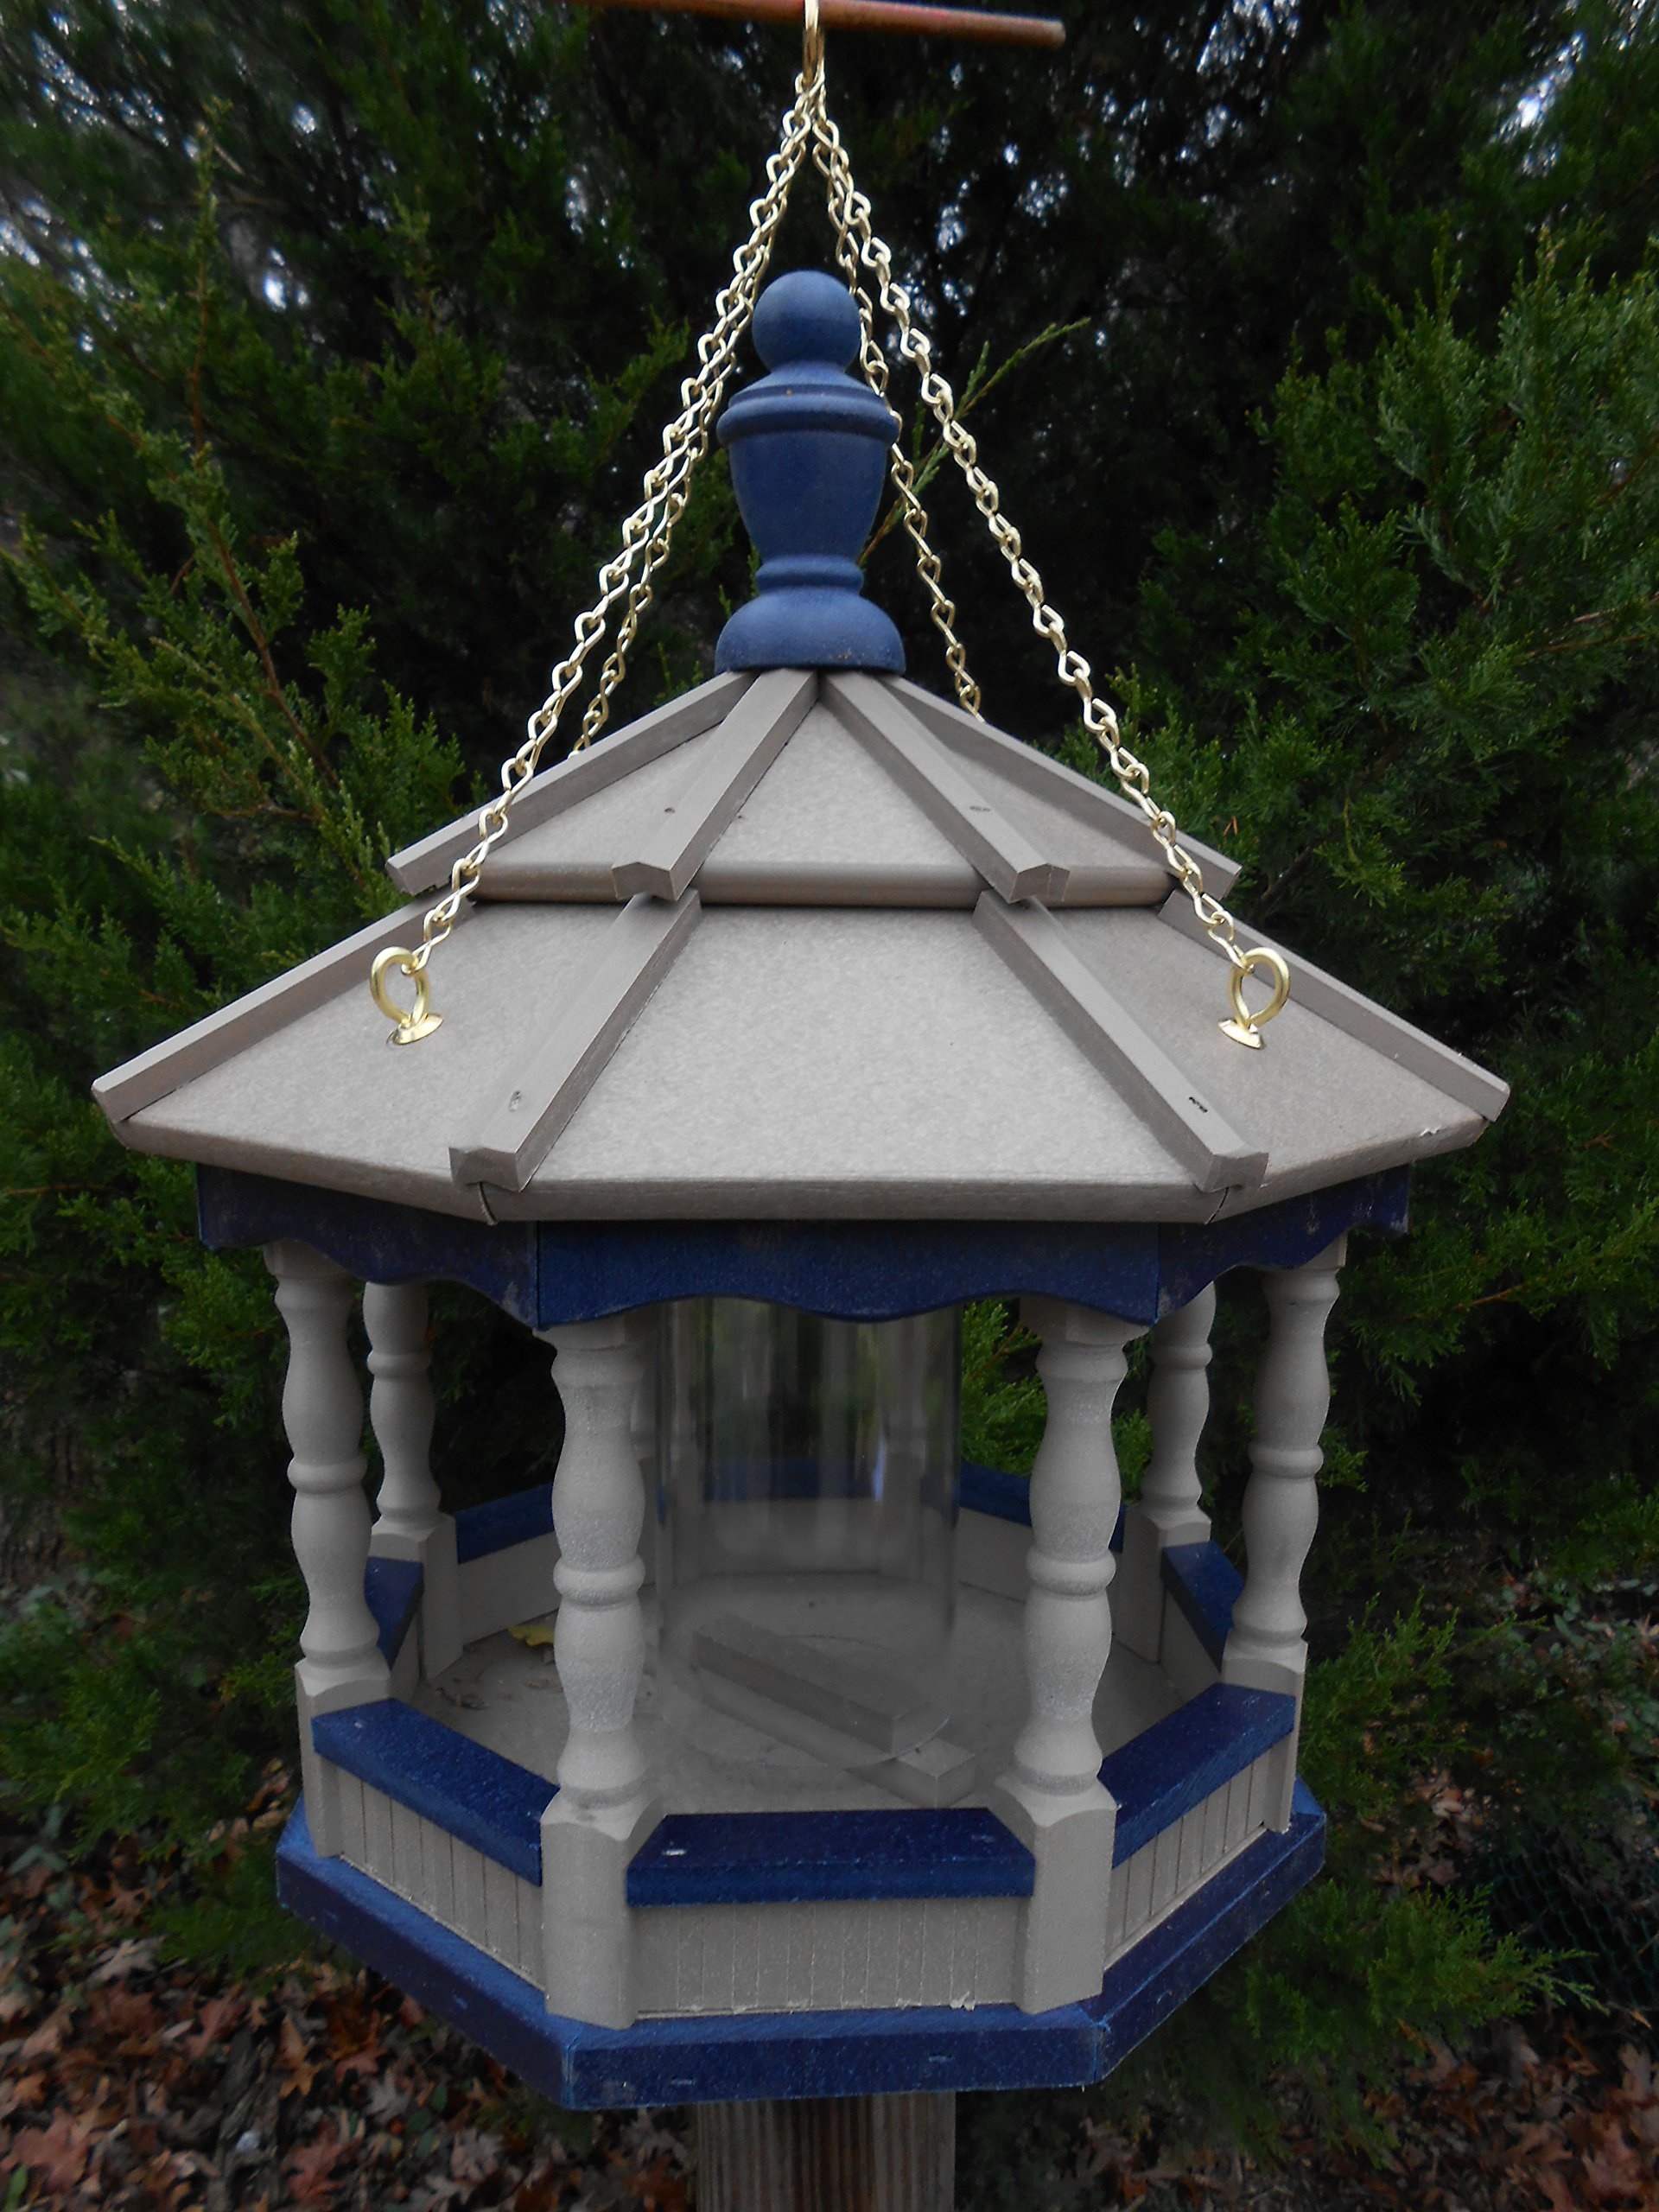 Hanging Poly Bird Feeder Amish Gazebo Handcrafted Homemade Clay & Blue